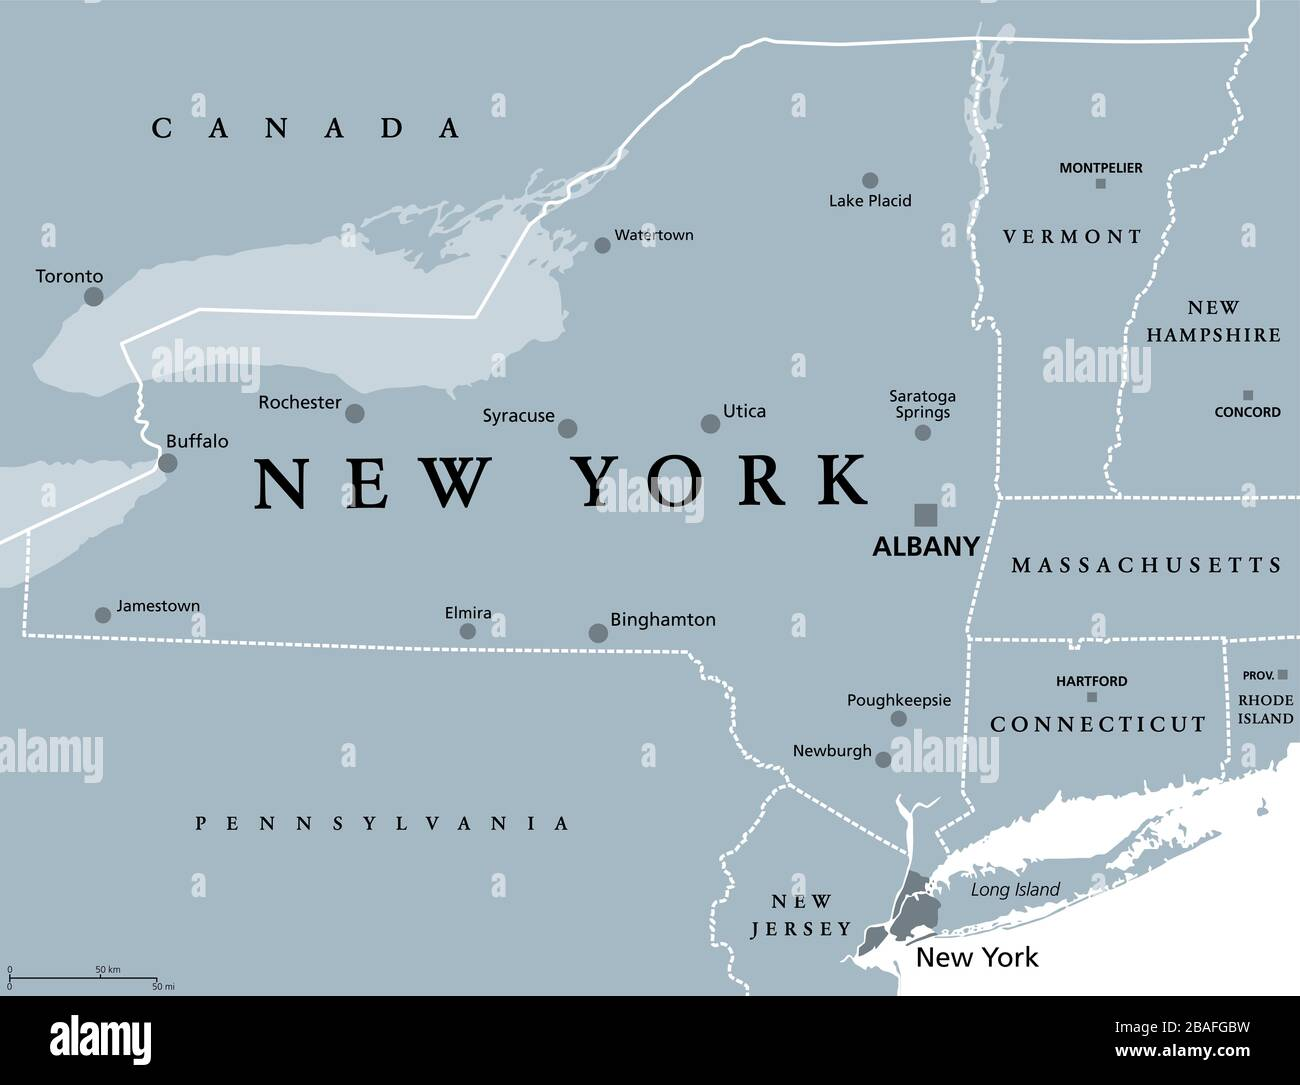 Cartina America New York.New York State Nys Gray Political Map With Capital Albany Borders And Important Cities State In Northeastern United States Of America Stock Photo Alamy